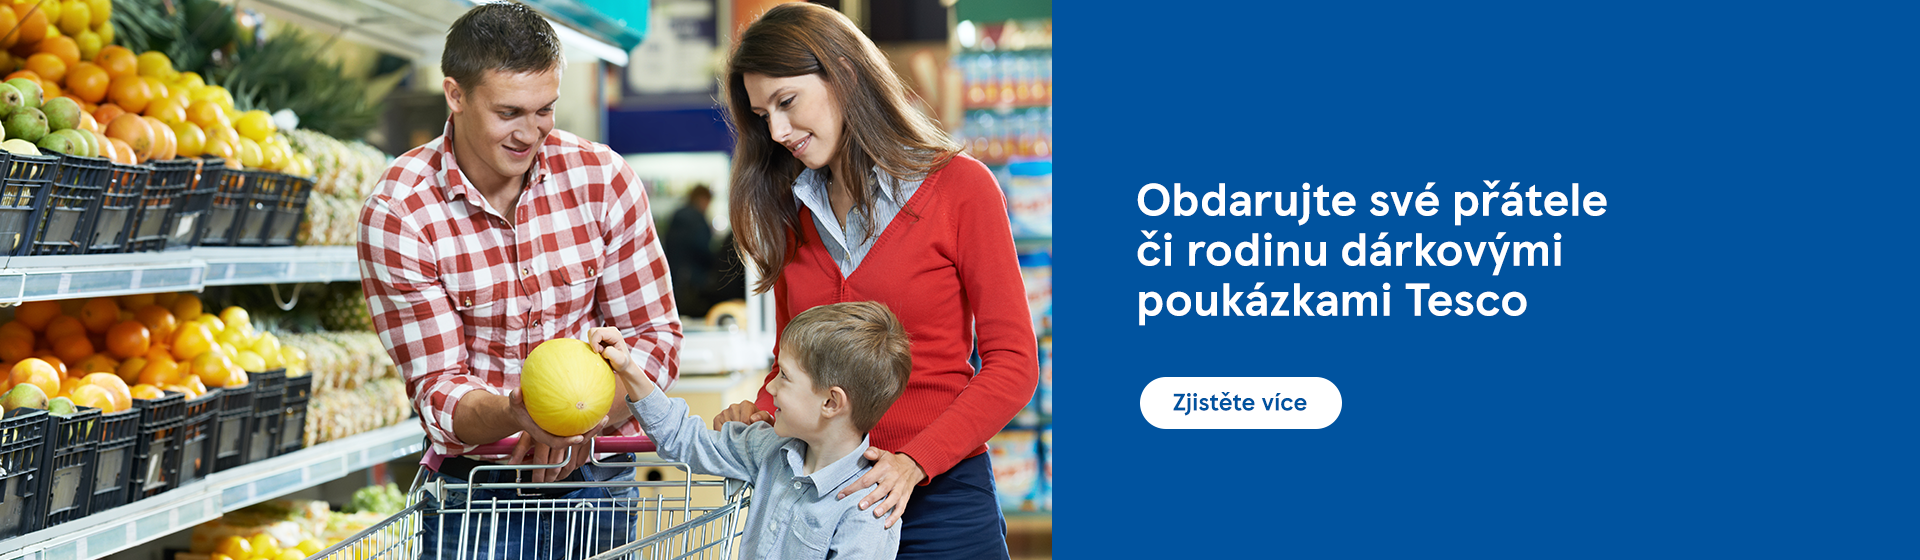 /img/tescoce_cz/upload/slider/desktop/zCz_voucher/vouchers-slider-02.png#960